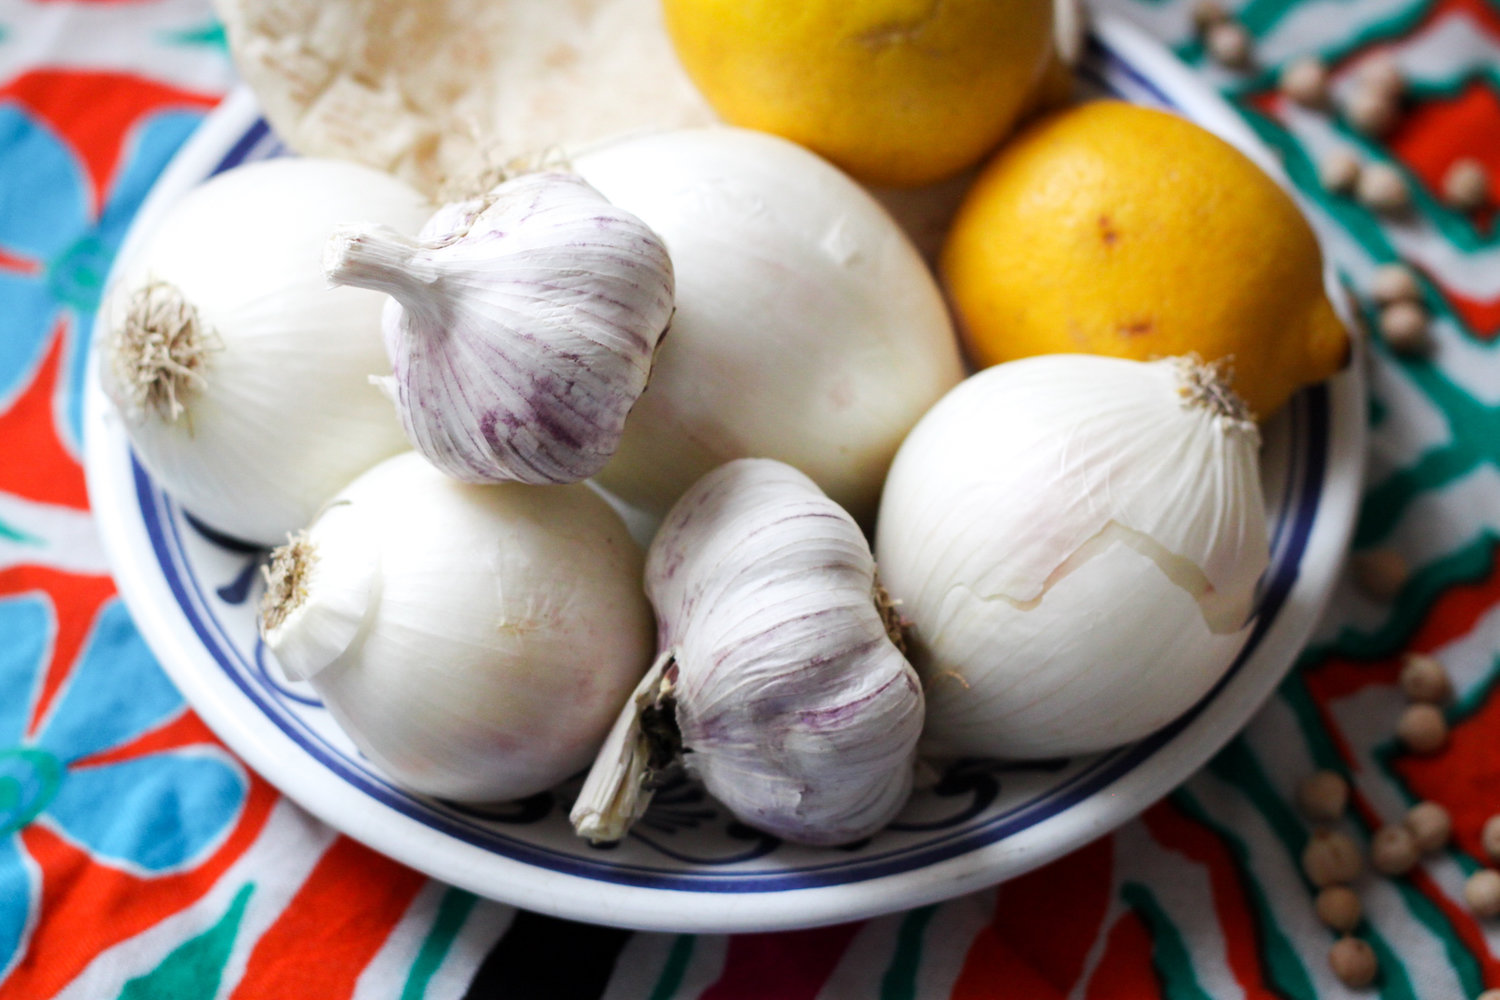 Onions, lemons, and garlic (Eat Me. Drink Me.)